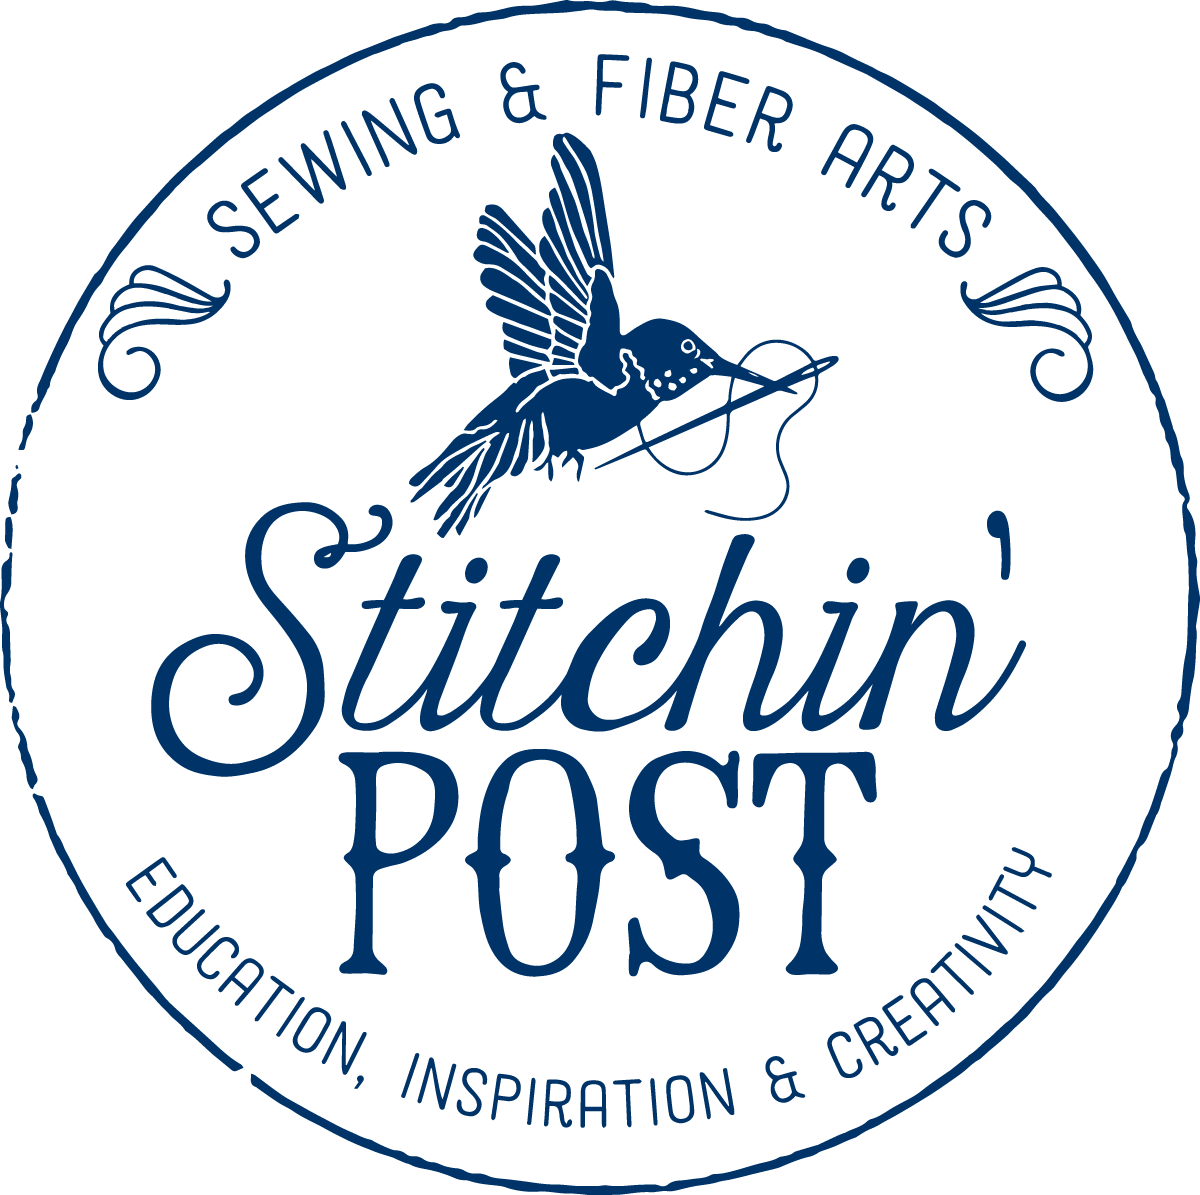 Stitchin Post - 311 W. Cascade St. (Hwy 20/126) in Sisters, OregonPhone: (541) 549-6061eMail: stitchin@stitchinpost.com